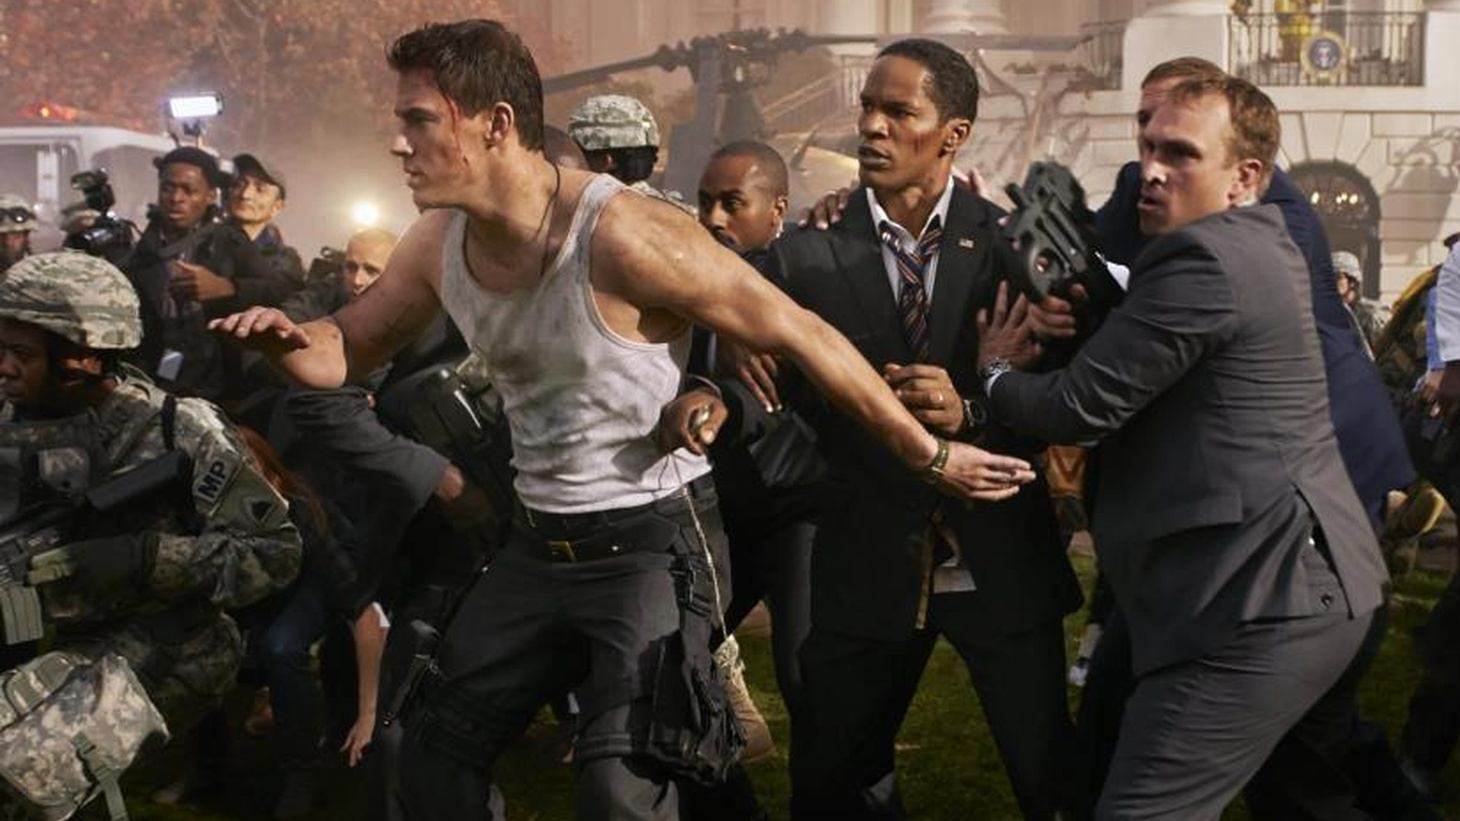 """White House Down"" may or may not have certified Channing Tatum as an action hero, but it certainly displays his energy, bemuscled build and easy charm...."